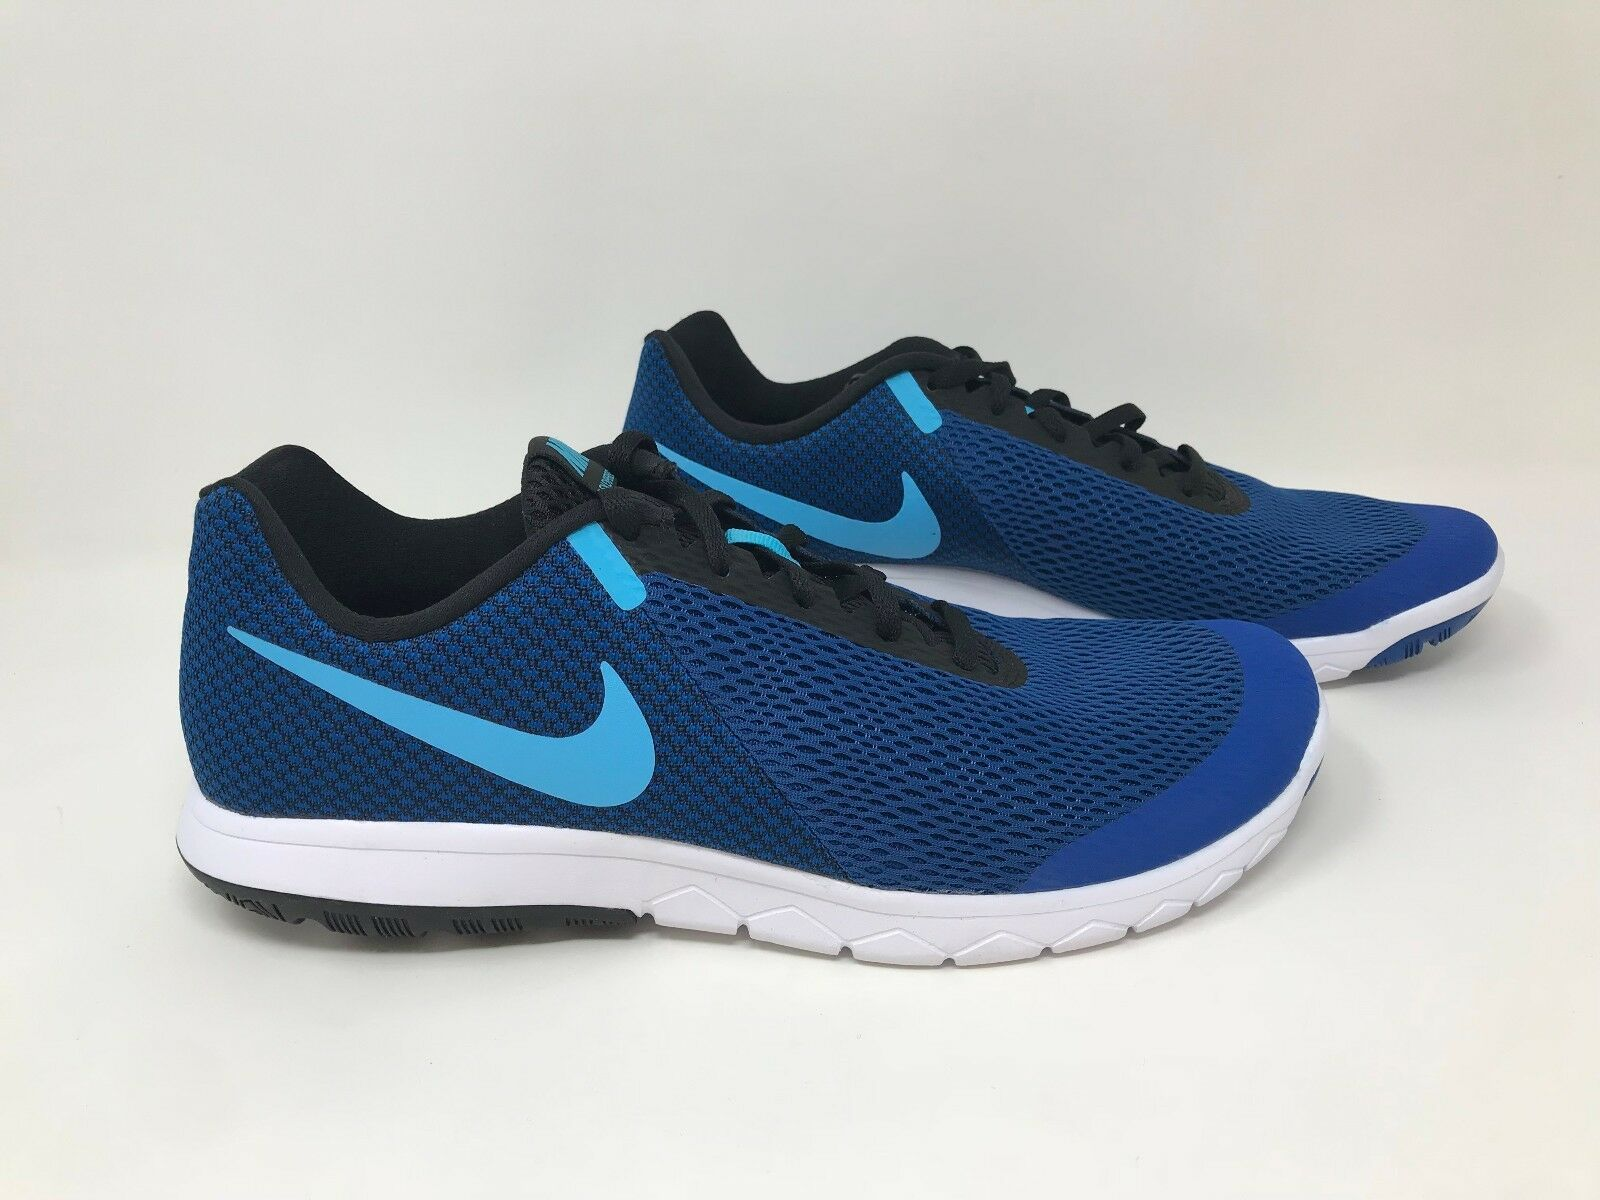 New! Men's Nike 881802-404 Flex Experience 6 Running Shoes - Royal Blue S59